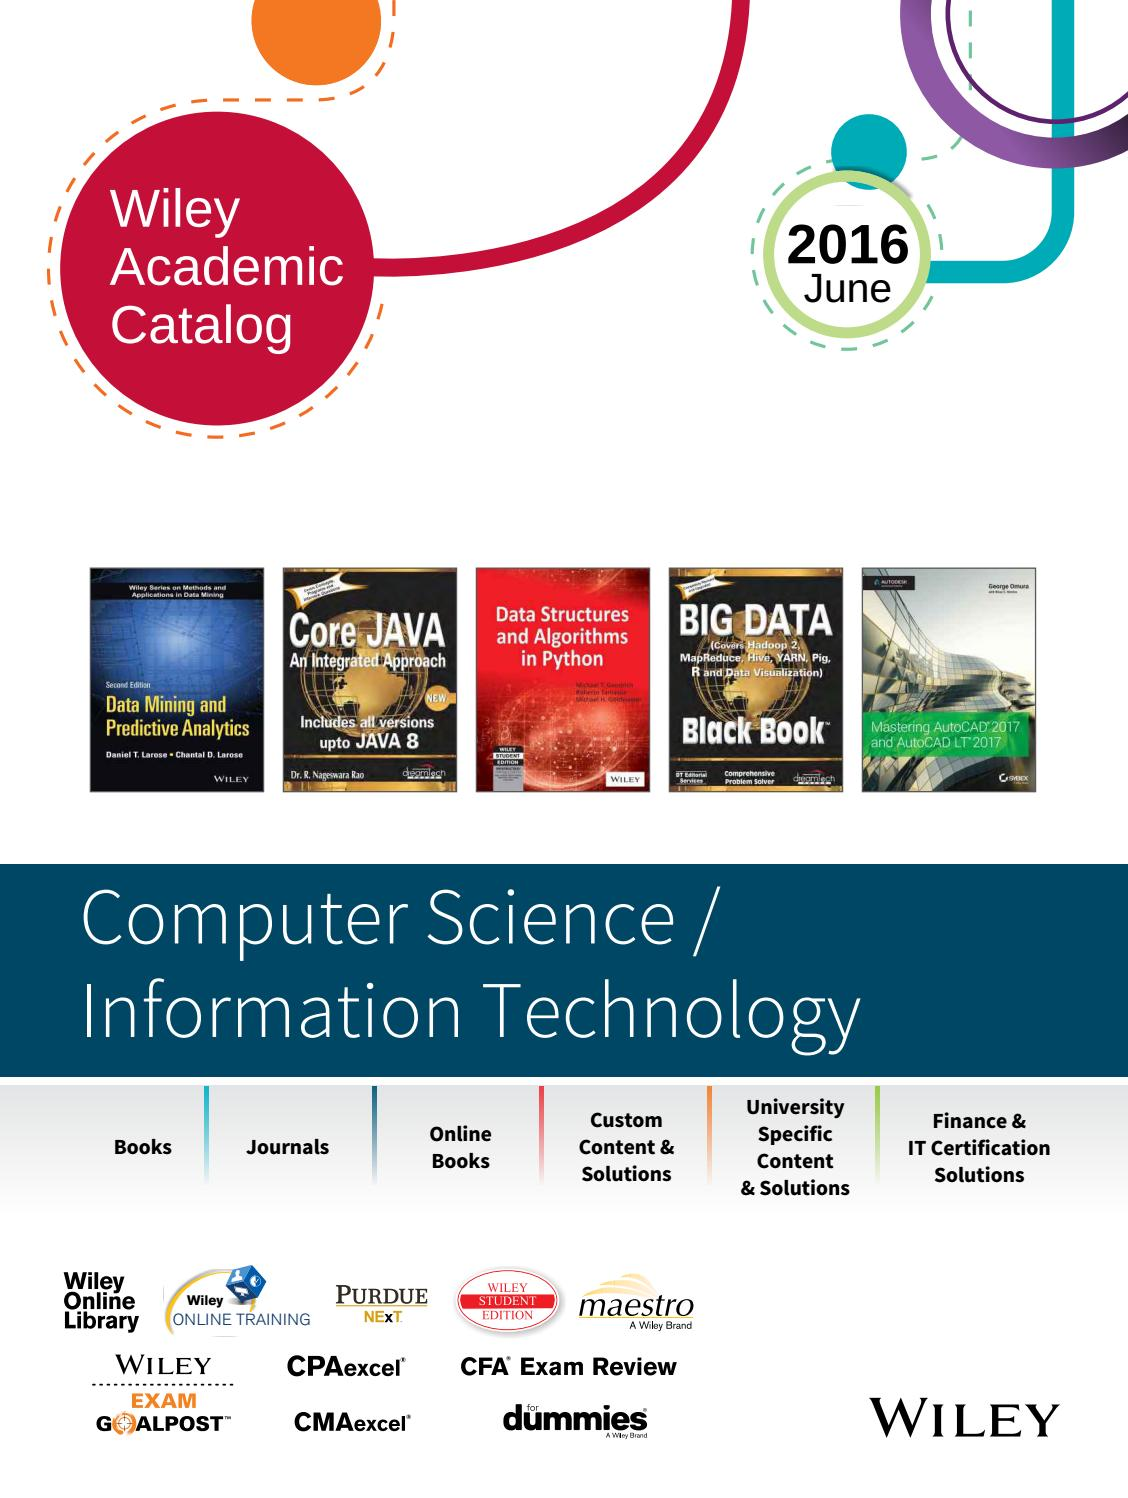 Wiley Academic Catalog Computer Science Information Technology June 2016 By Wiley India Issuu